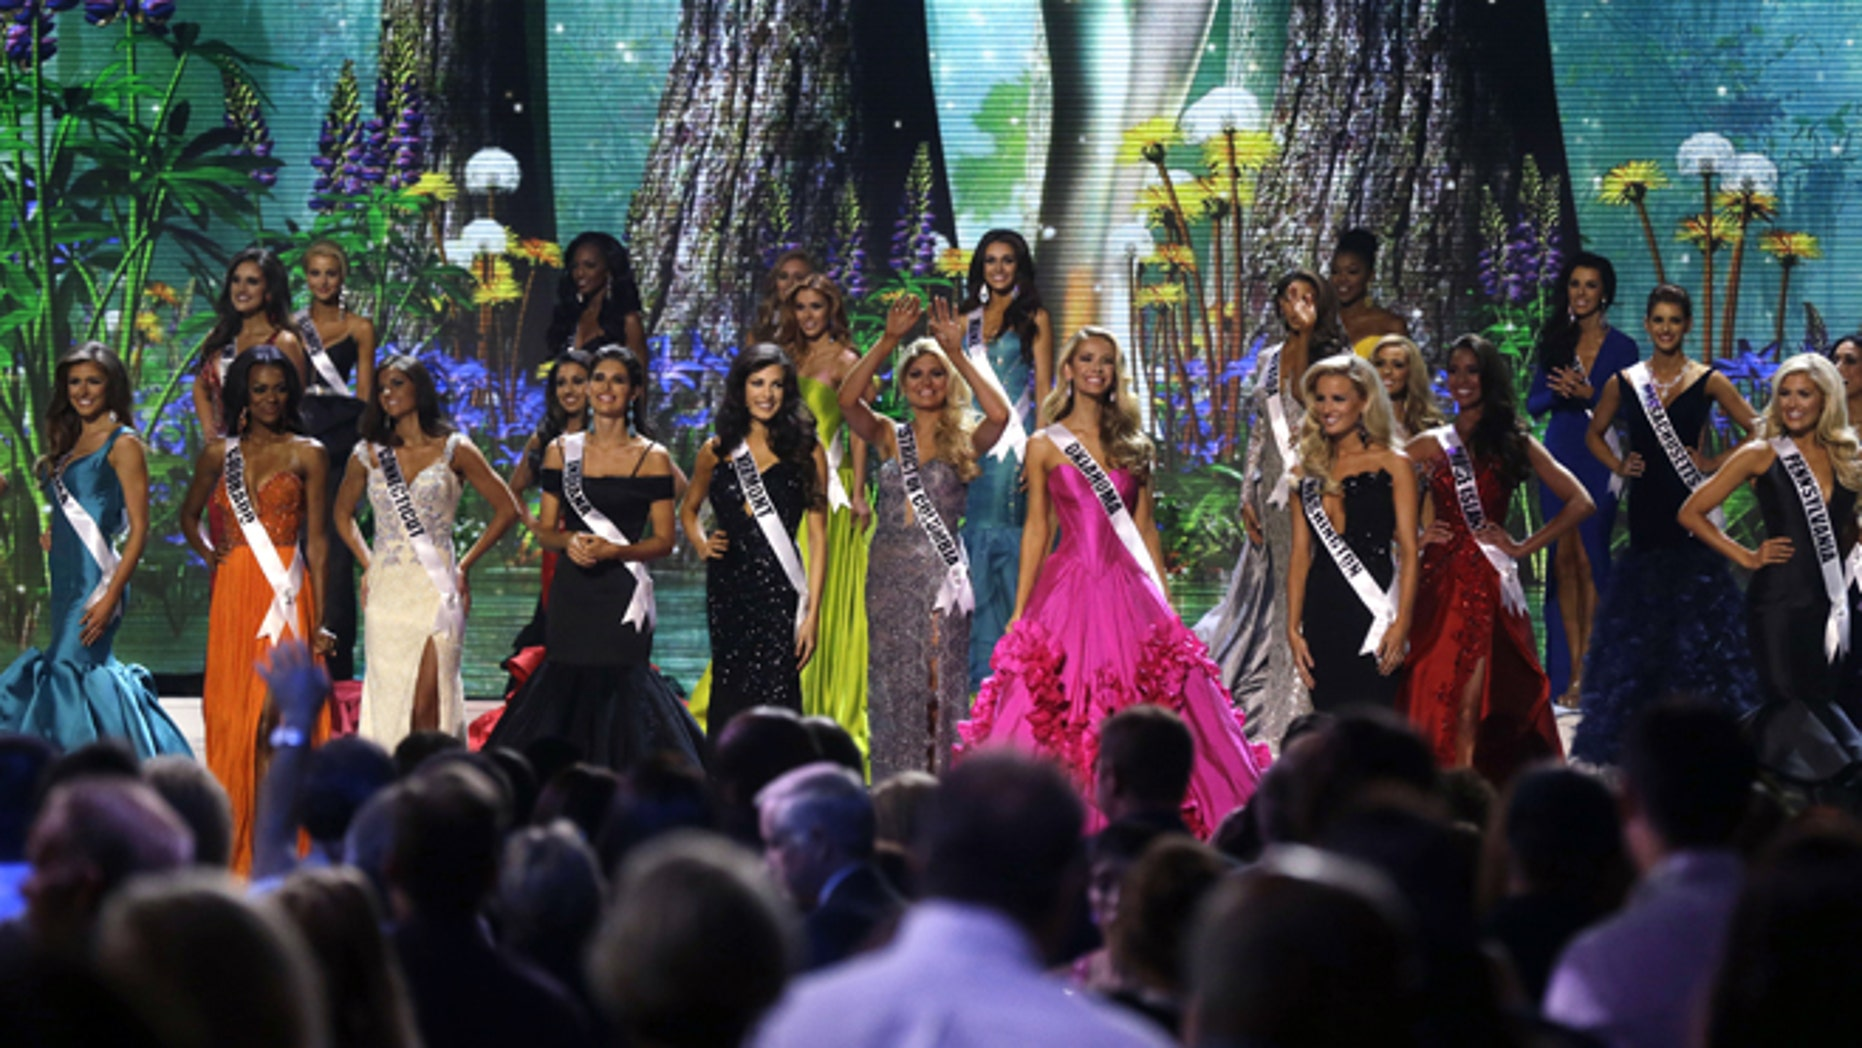 Contestants wave onstage at the conclusion of the preliminary round of the 2015 Miss USA Pageant in Baton Rouge, La., Wednesday, July 8, 2015. (AP Photo/Gerald Herbert)